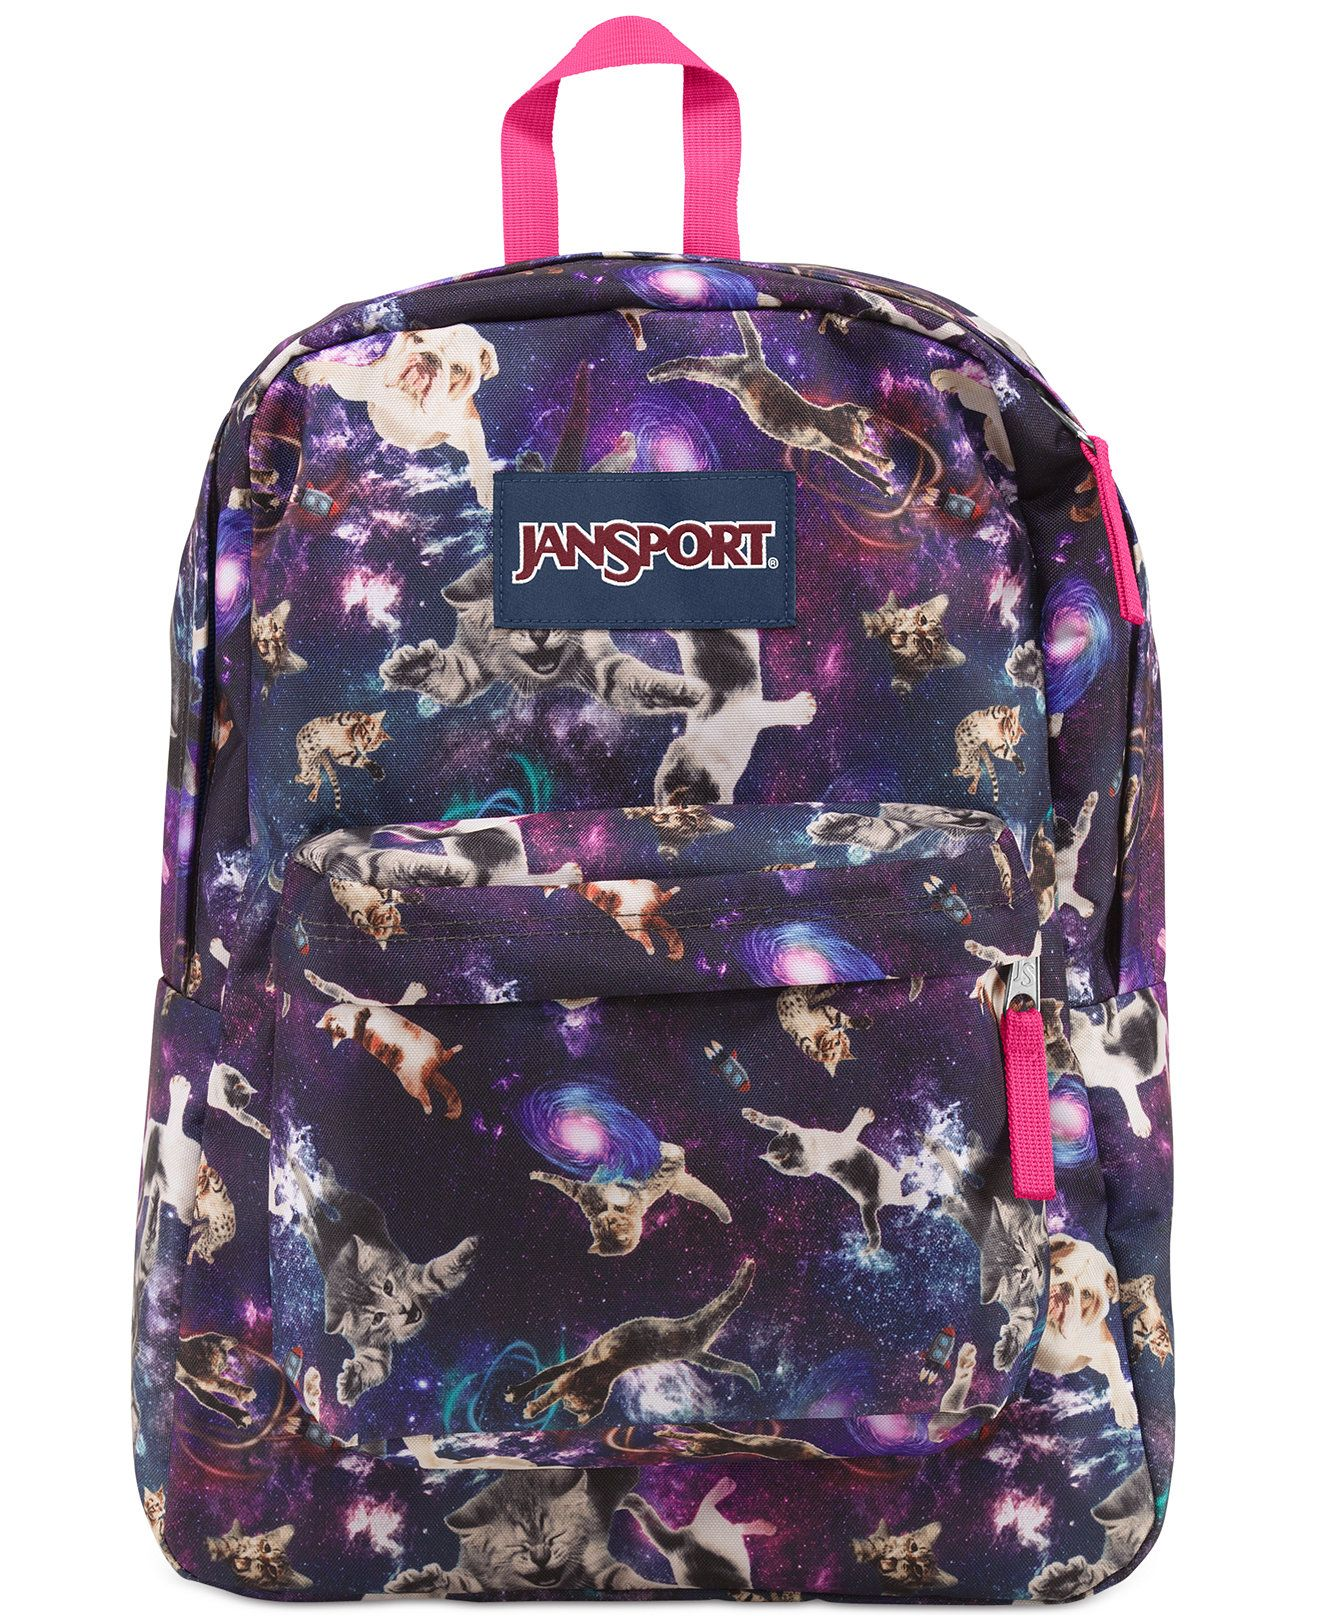 Shops, Jansport and Handbags on Pinterest